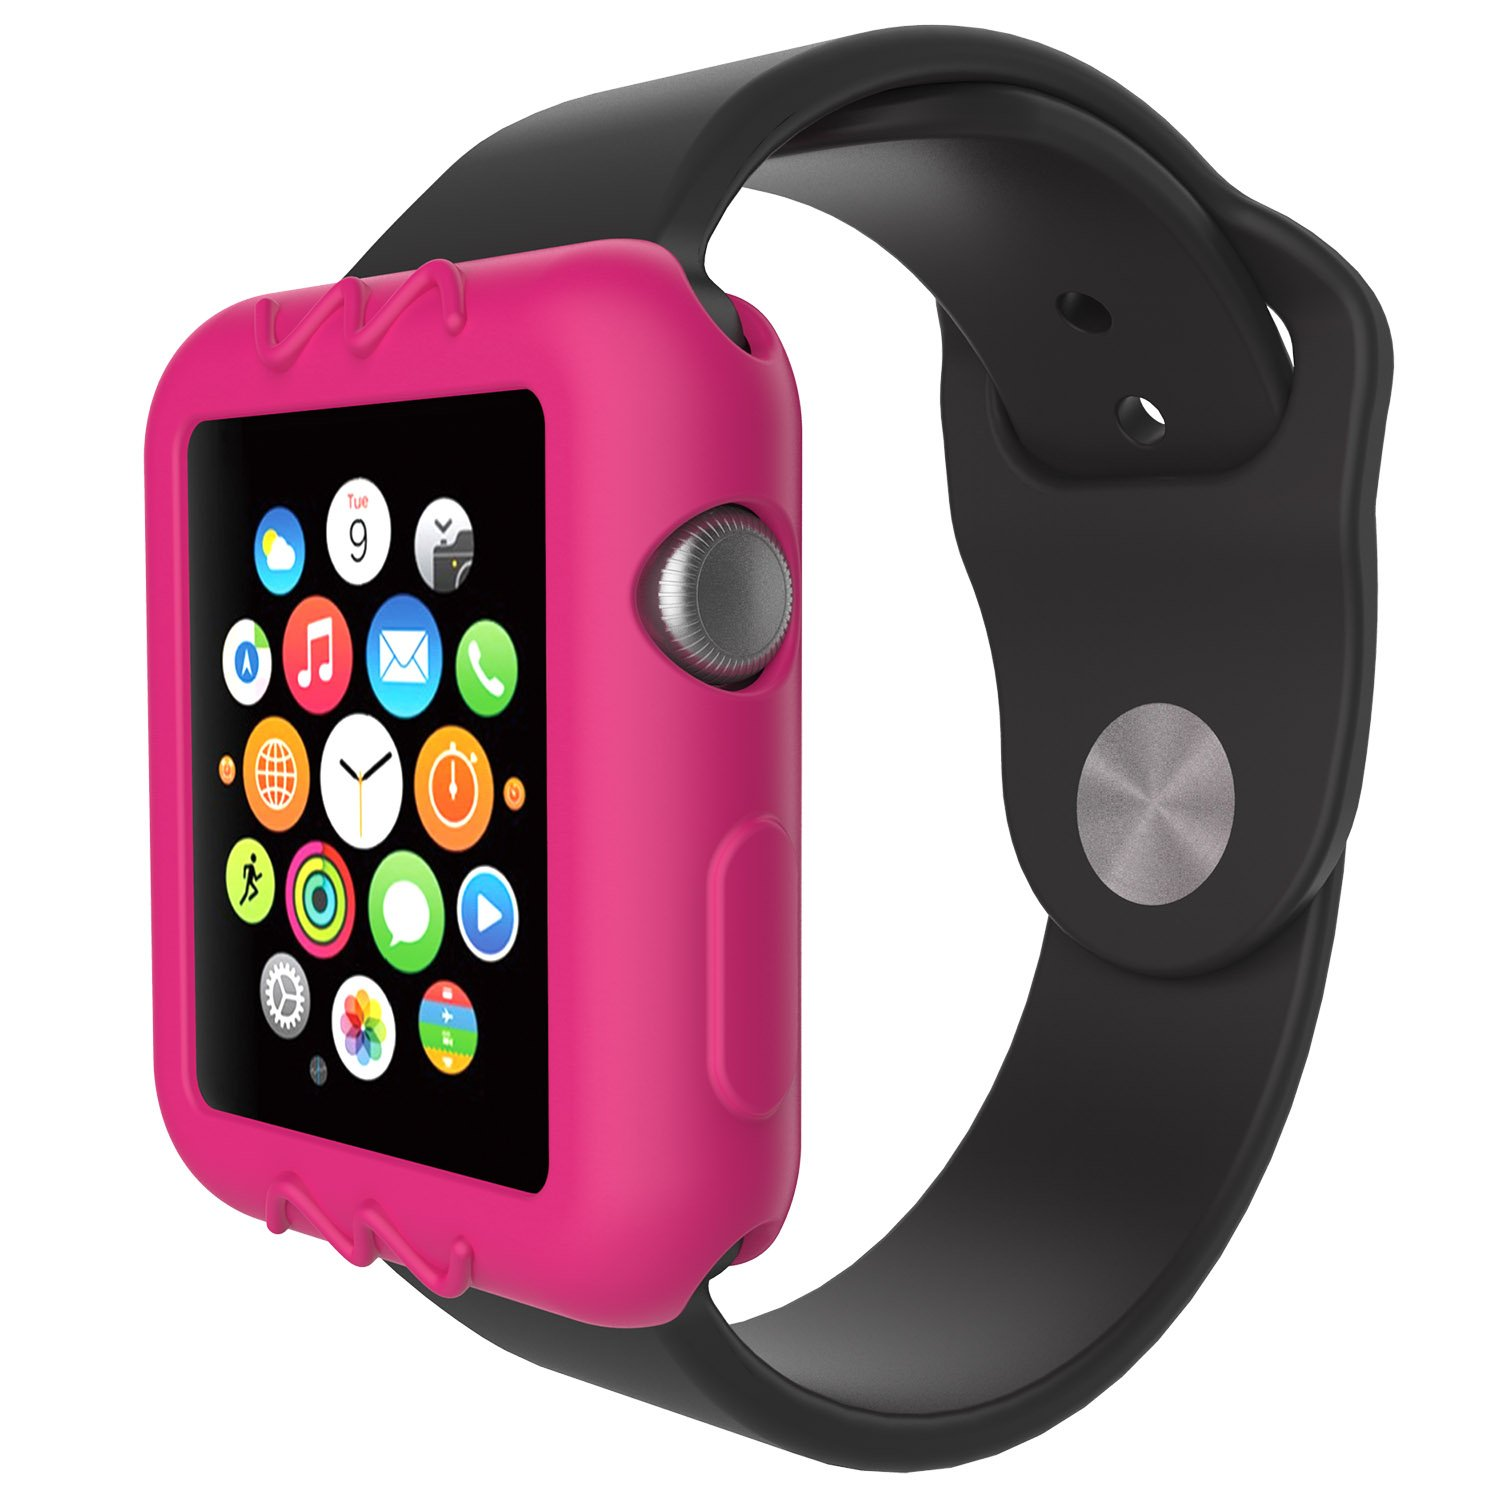 For Apple Watch 42mm Protective Case, 10x Replacement Silicone Soft Case Cover for Apple Watch Series 3 2 1 Smartwatch, 10pcs by E ECSEM (Image #5)